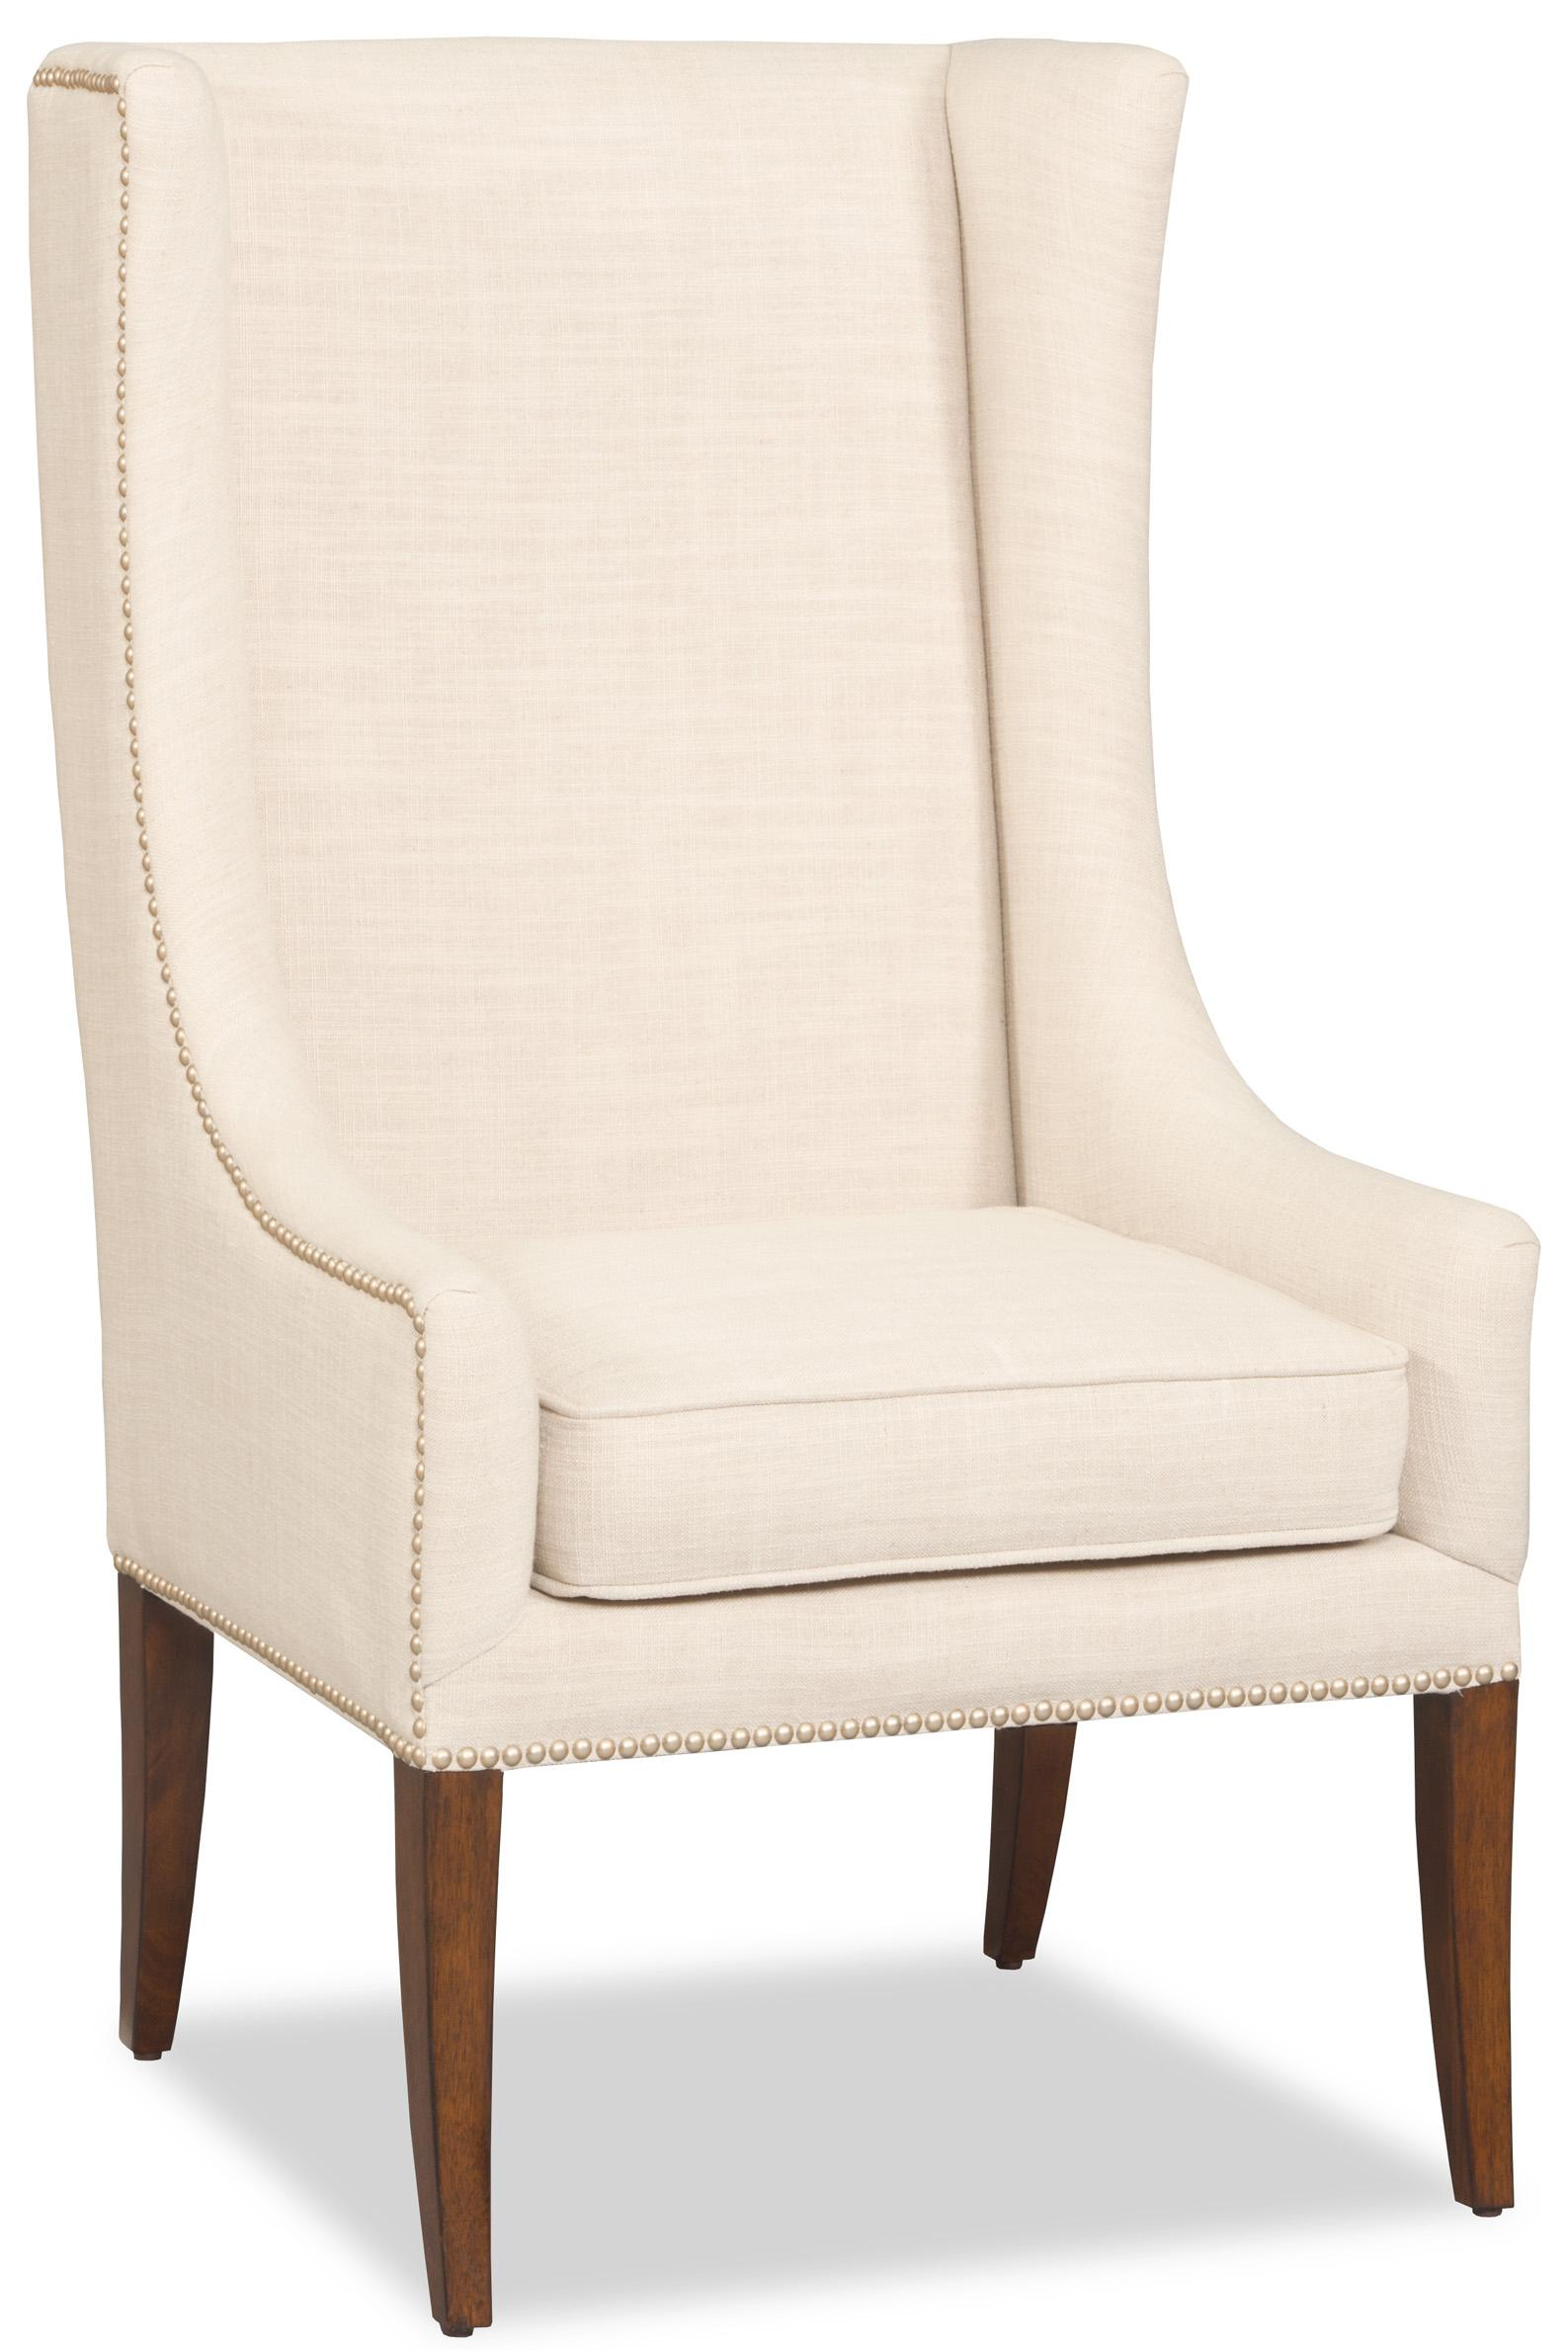 Hooker Furniture Accent Chairs Accent Chair - Item Number: 300-350014